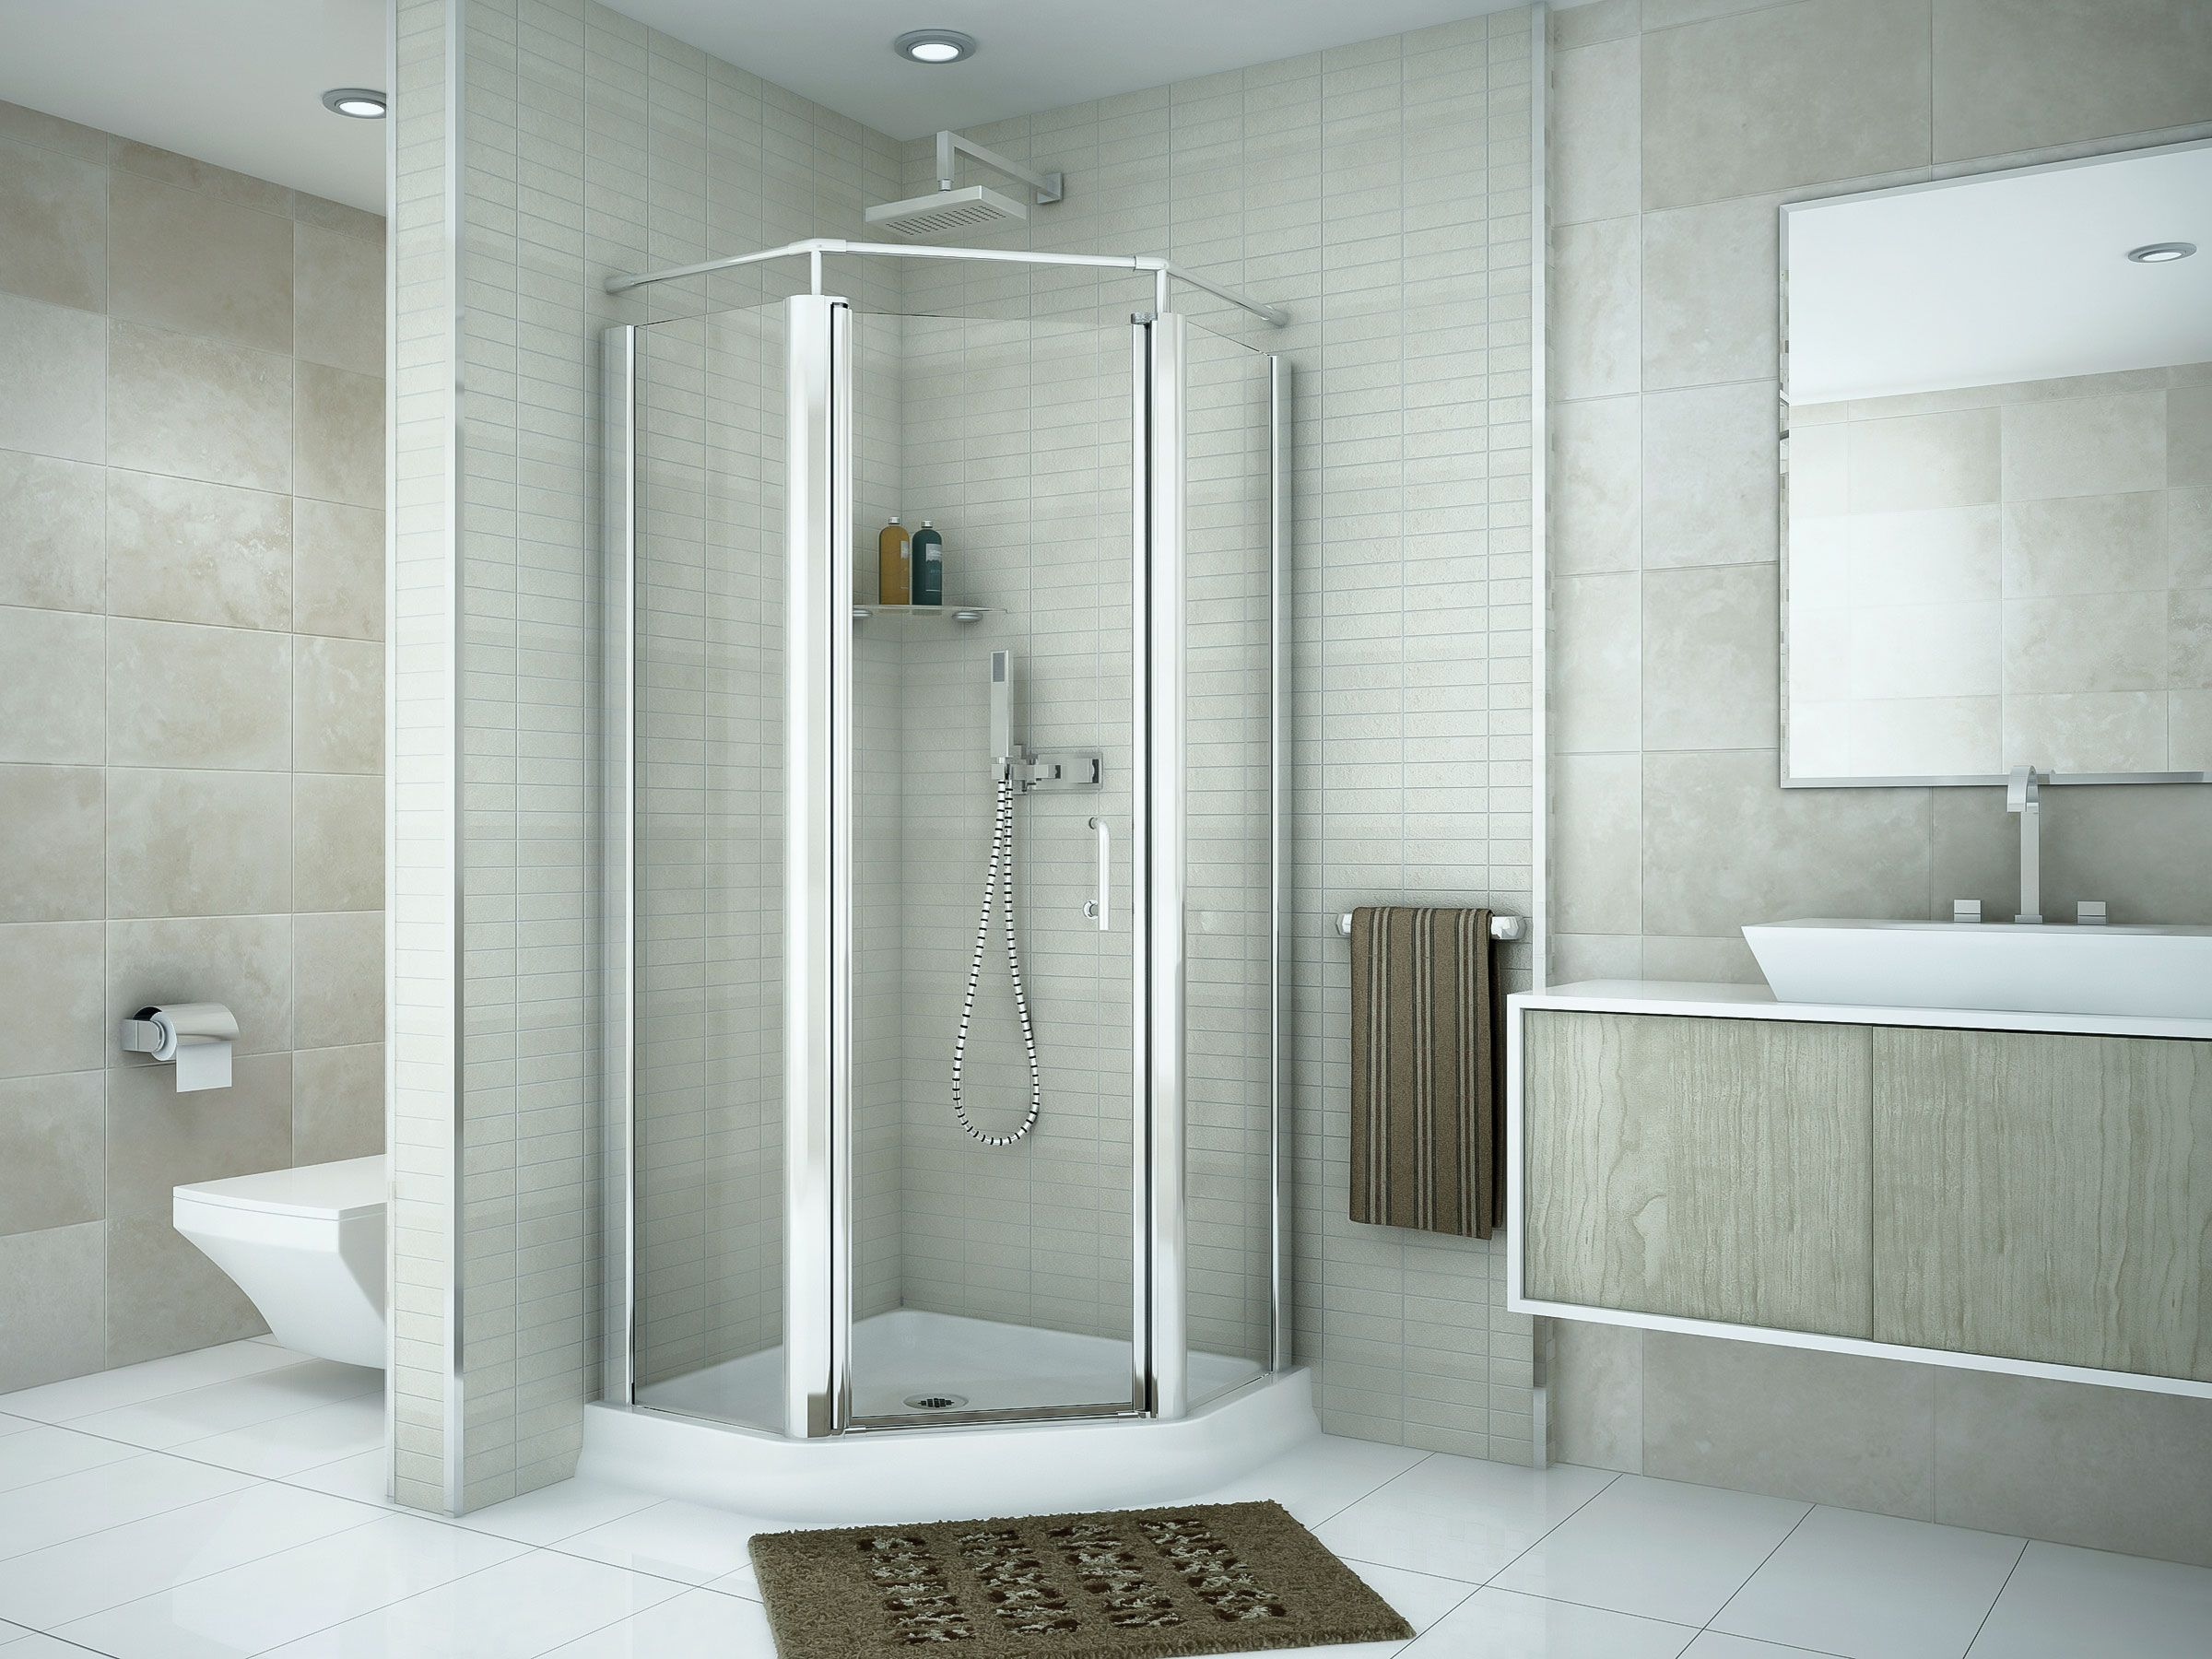 This 22636CHCL neo angle centralentry shower door is